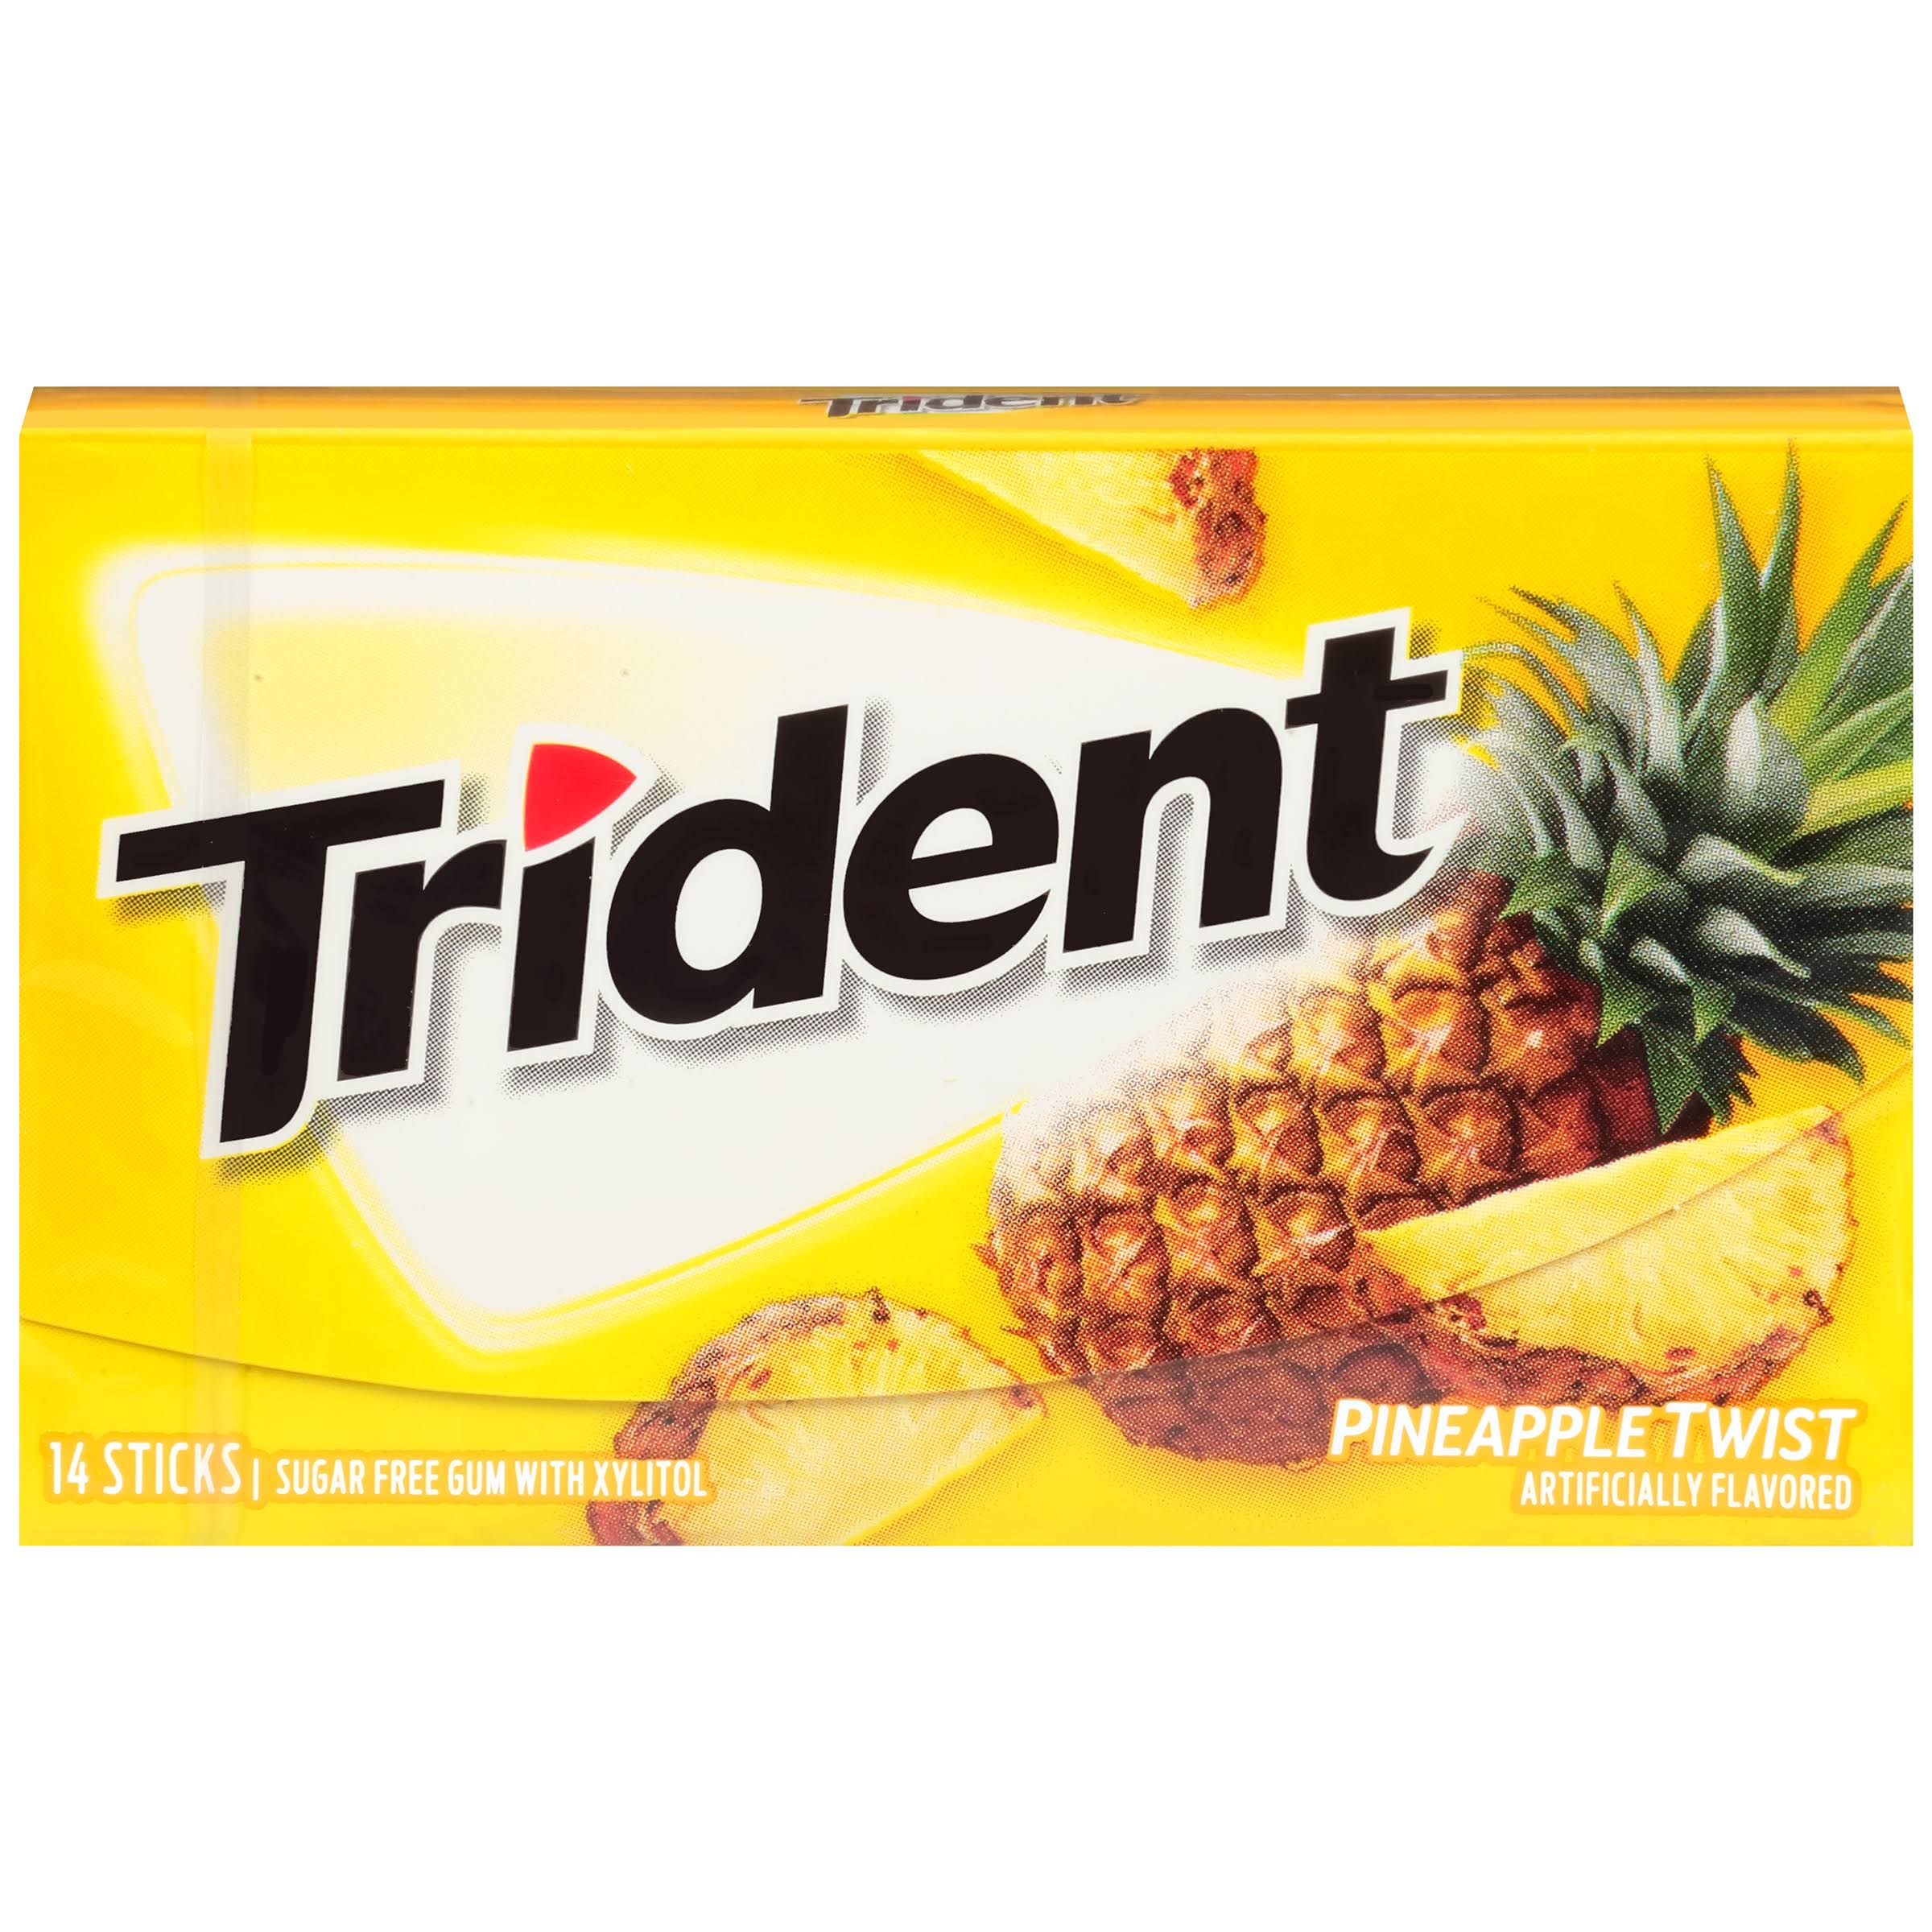 Trident Sugar Free Gum - Pineapple Twist, 14 Sticks, 0.95oz